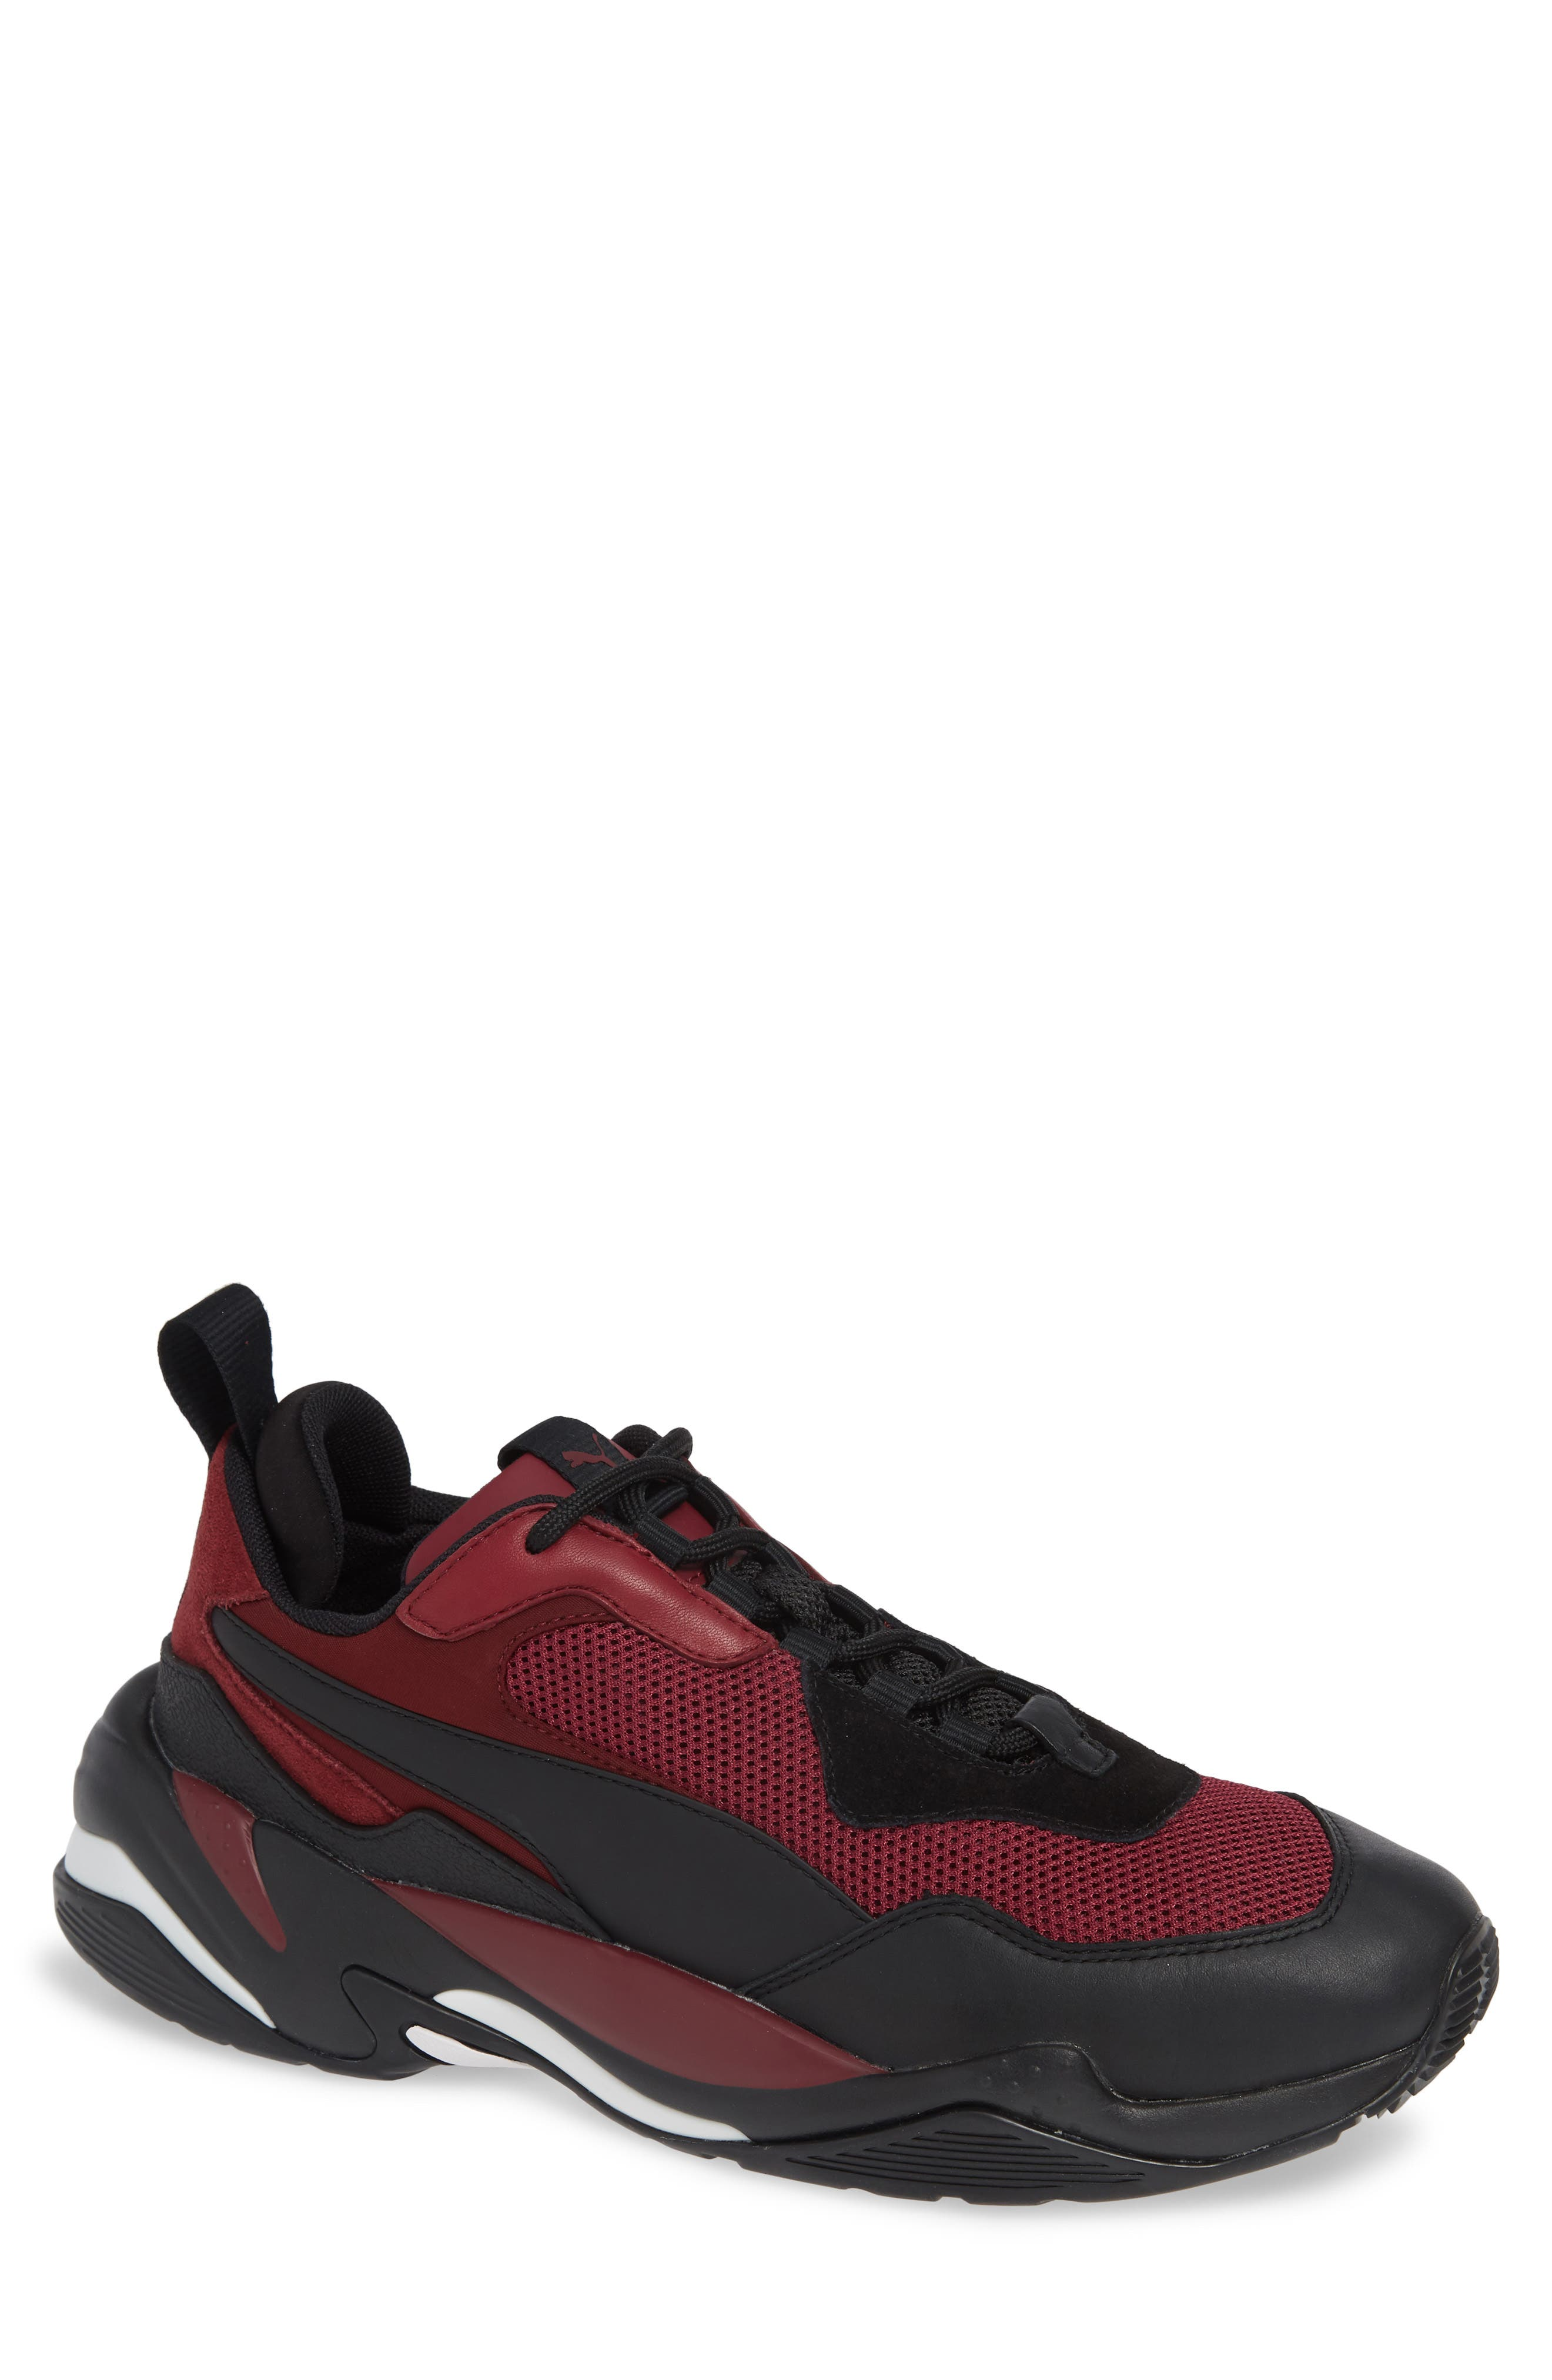 Thunder Spectra Sneaker,                             Main thumbnail 1, color,                             RHODODENDRON/ BLACK